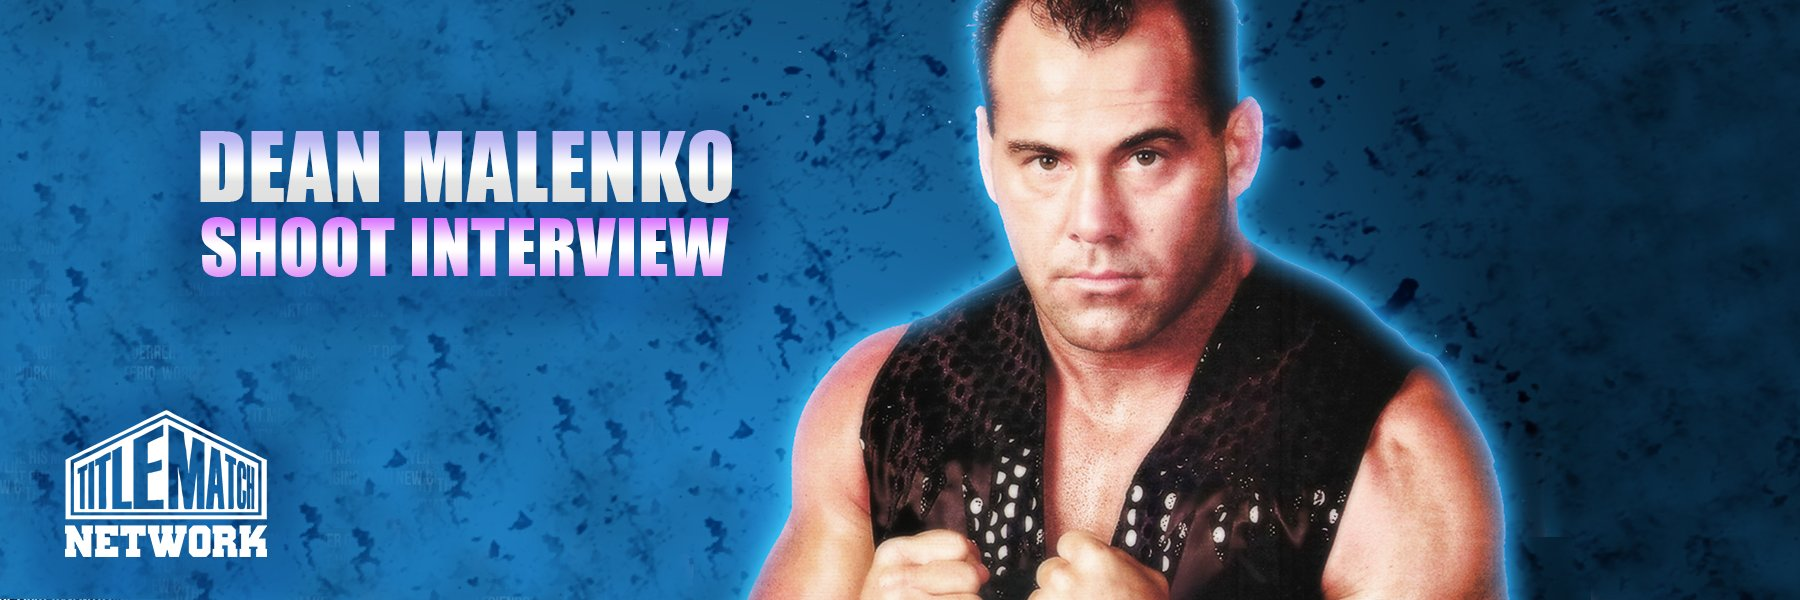 Stream the 1st Ever Dean Malenko (WWE/AEW) Shoot Interview! 2+ Hours